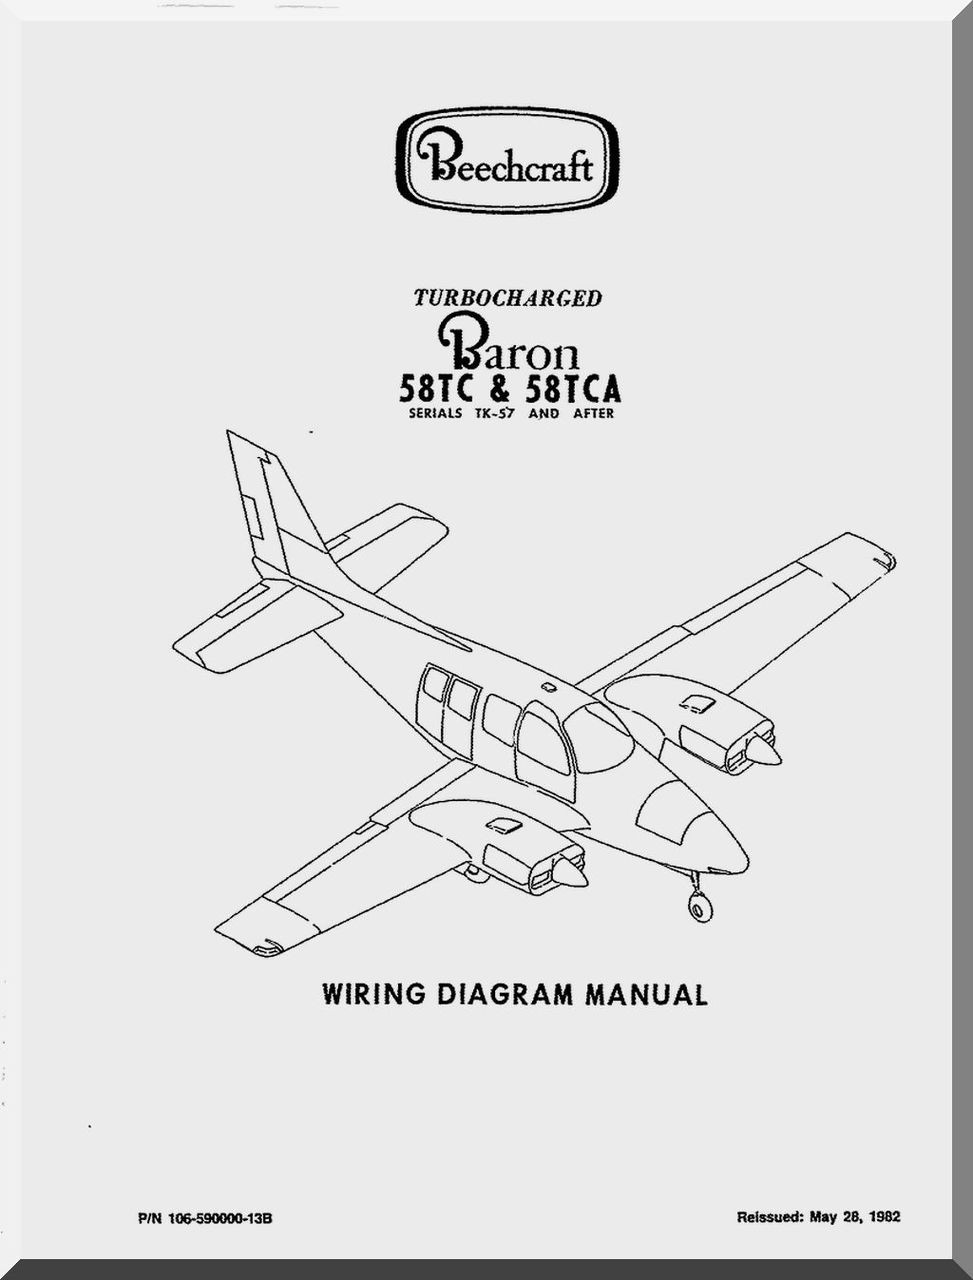 beechcraft baron 58 tc tca aircraft wiring manual 1982